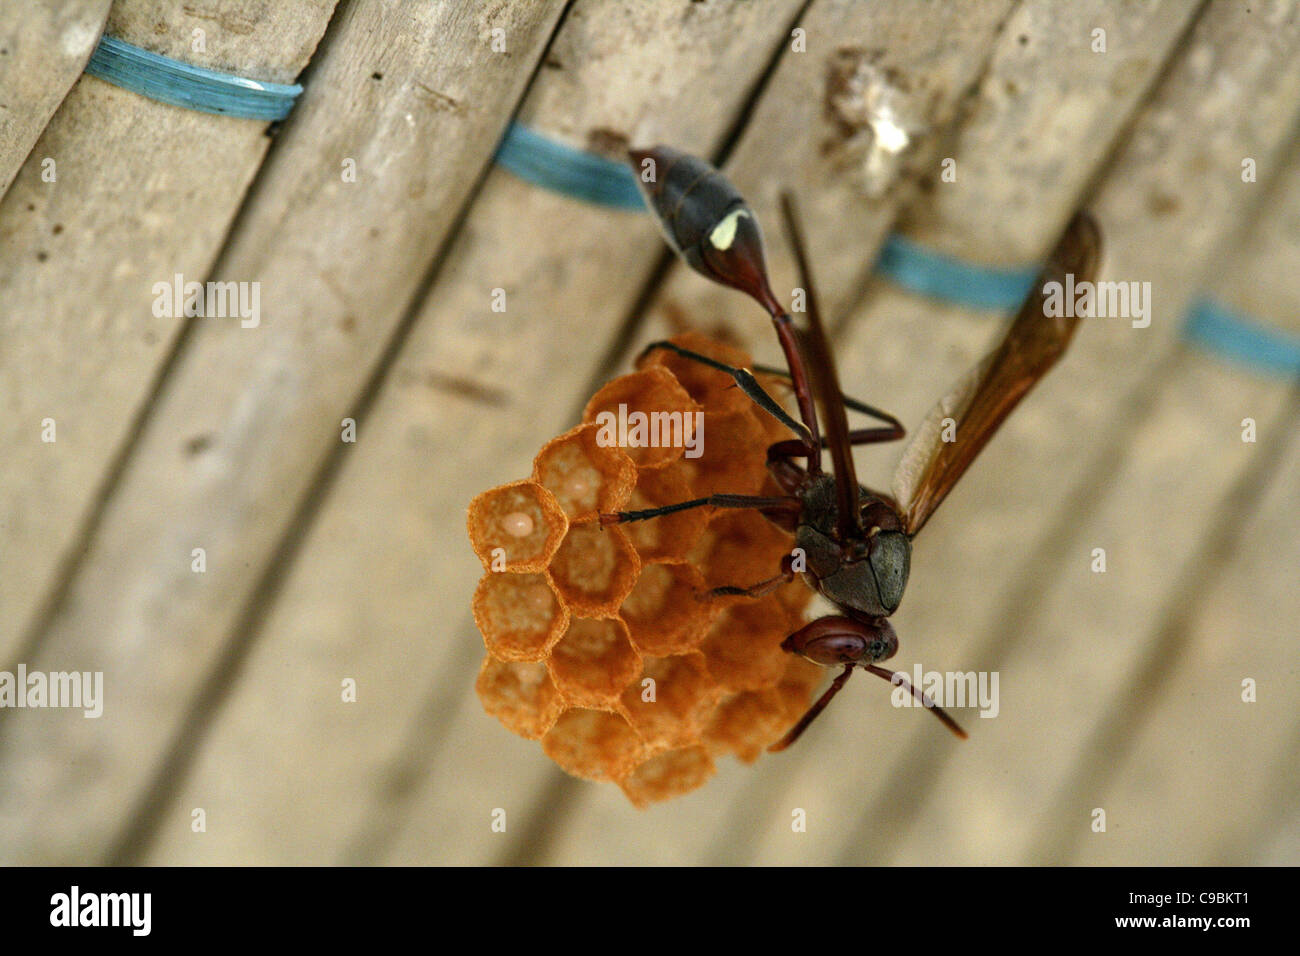 Africa, Guinea-Bissau, Wasp sitting on comb - Stock Image